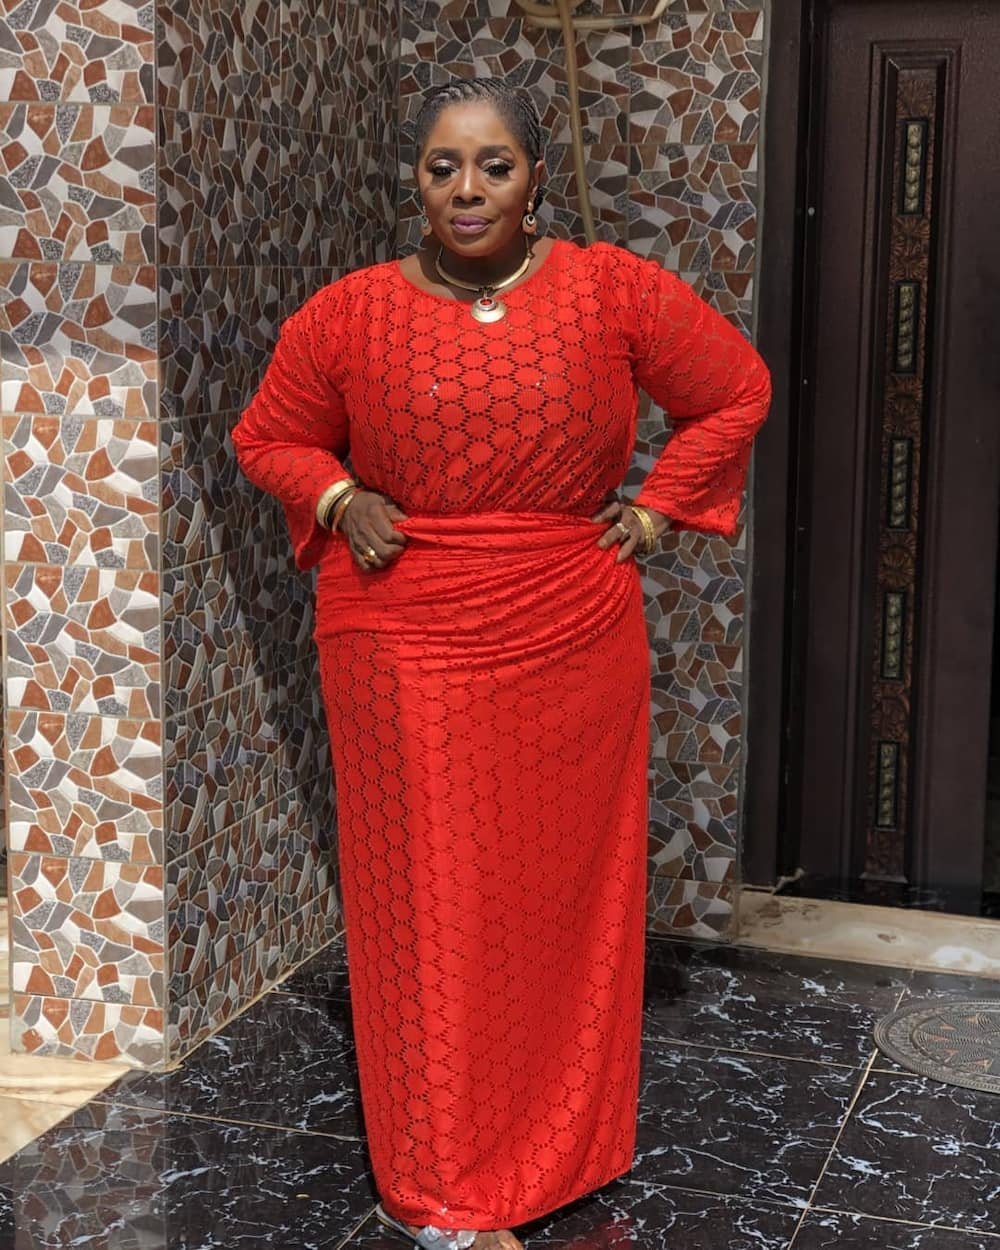 Trump must win this election - Nollywood actress Rita Edochie shows support for US president